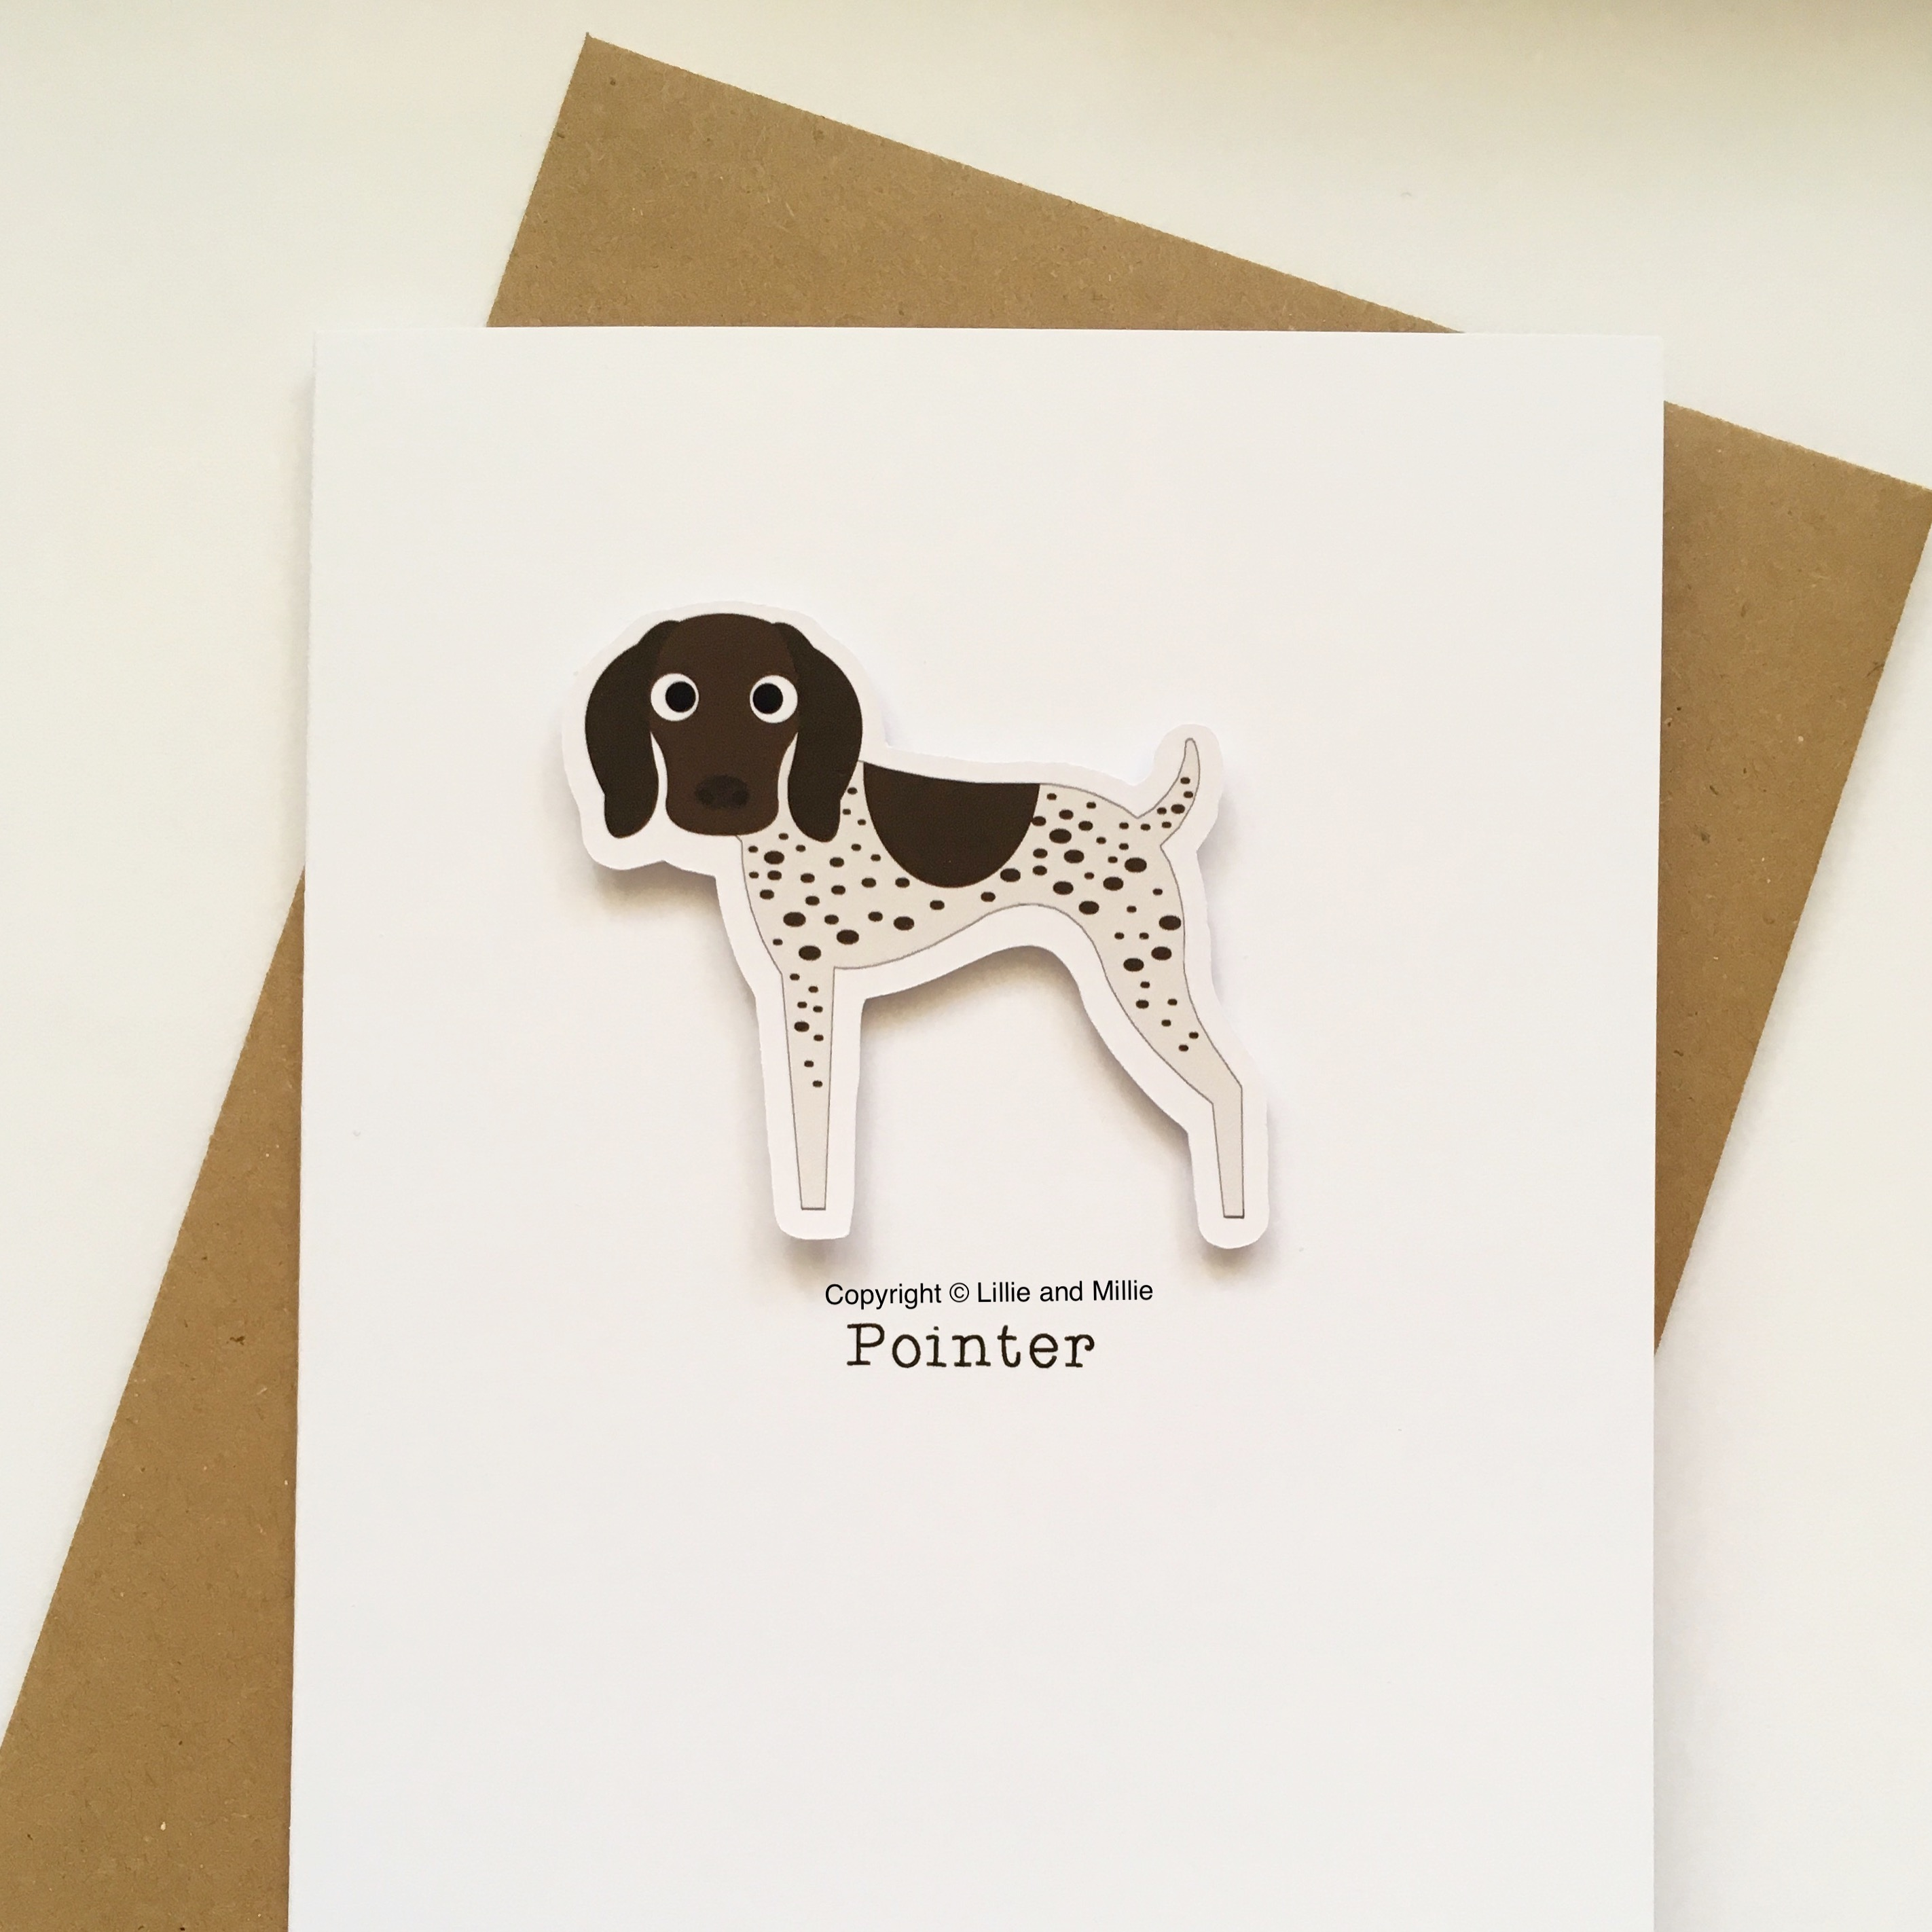 Pointer Dog Greetings Card